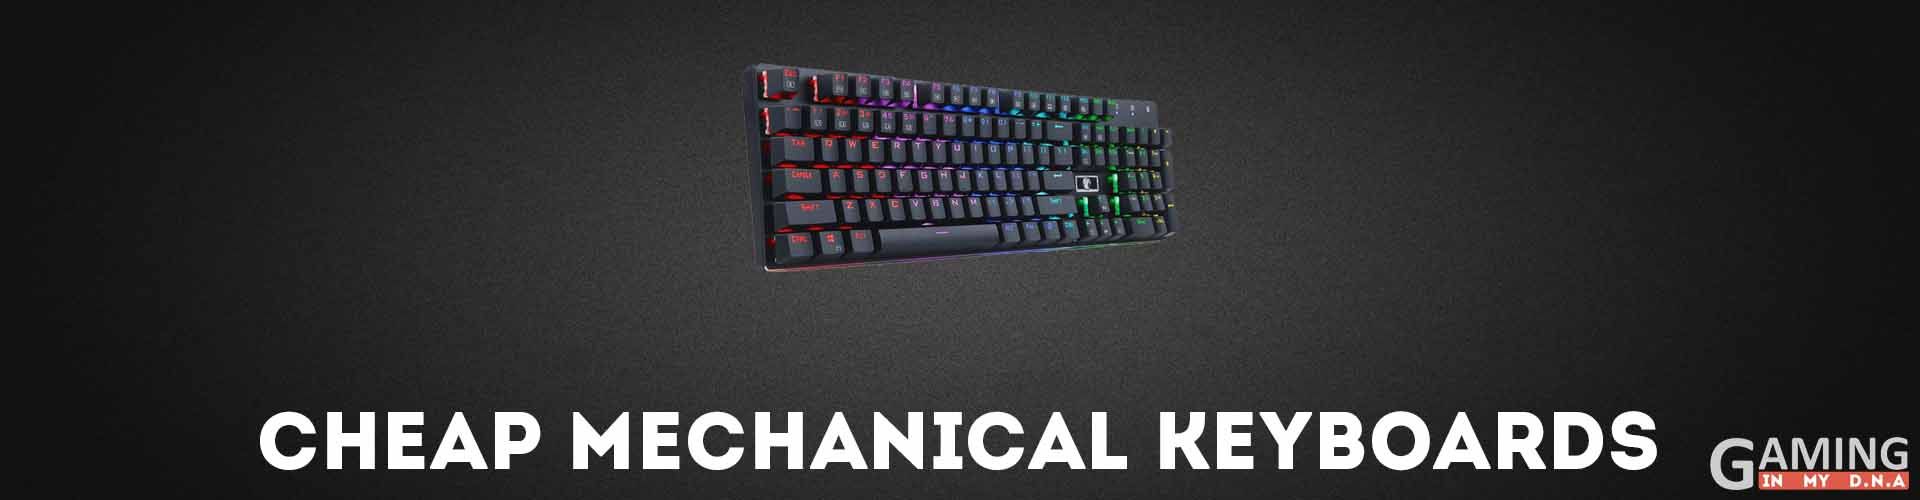 cheap Mechanical Gaming Keyboard Under $50 & $100